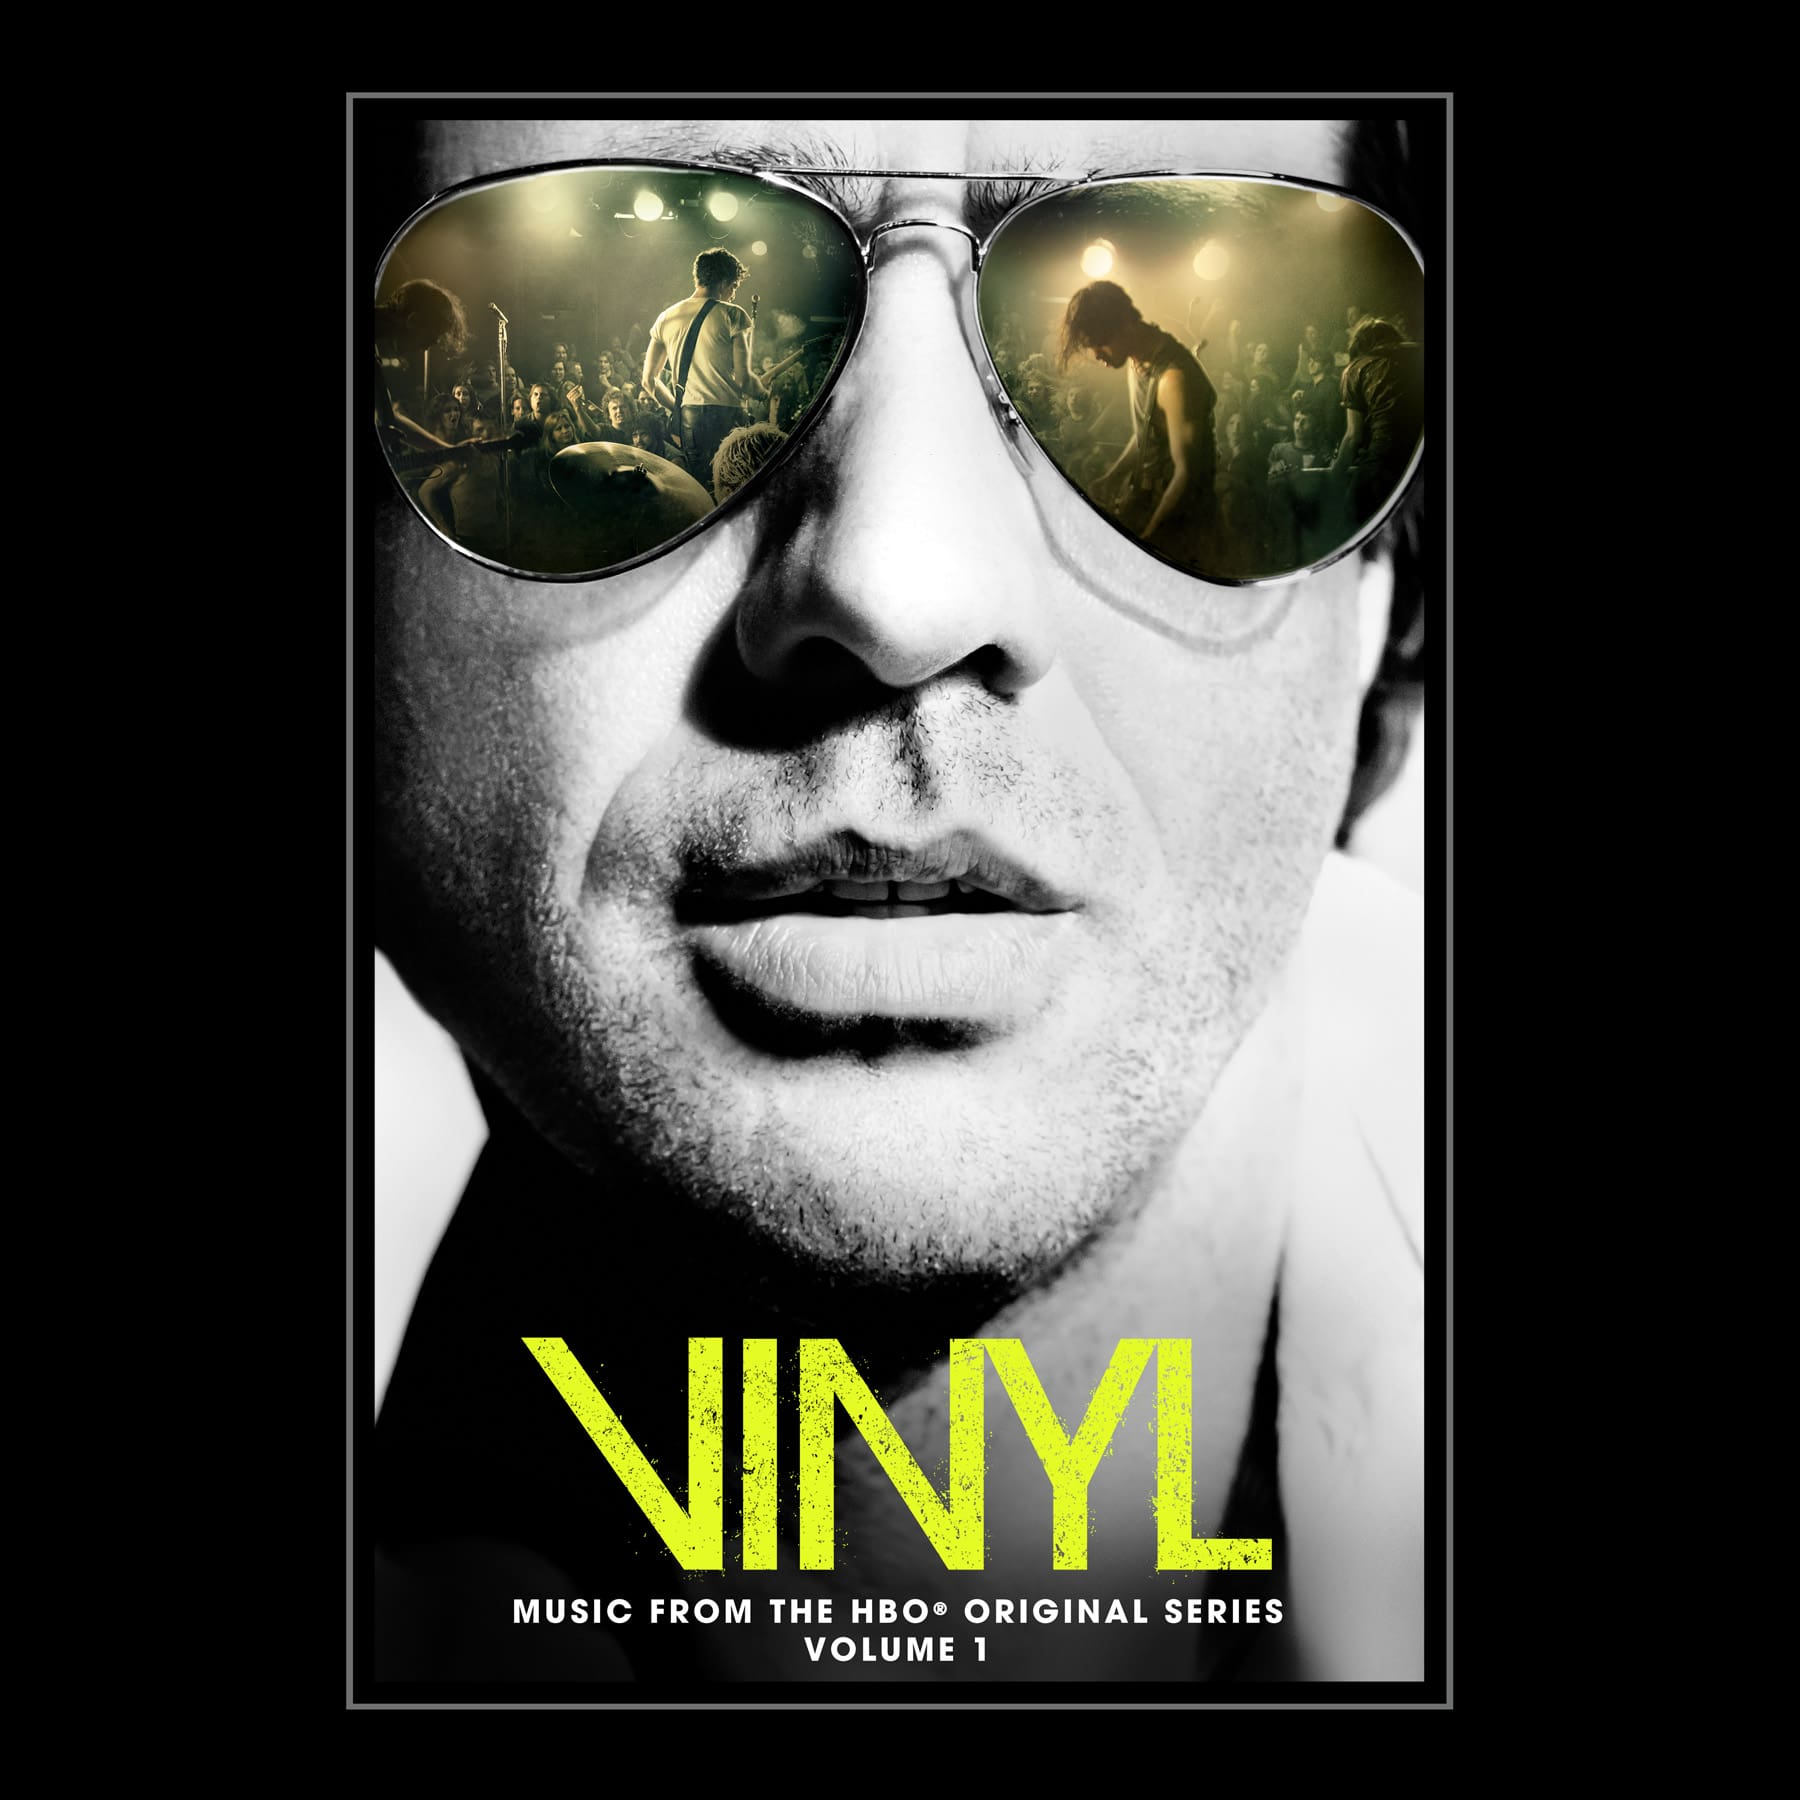 Vinyl Atlantic Records And Wbr Team Up To Release The